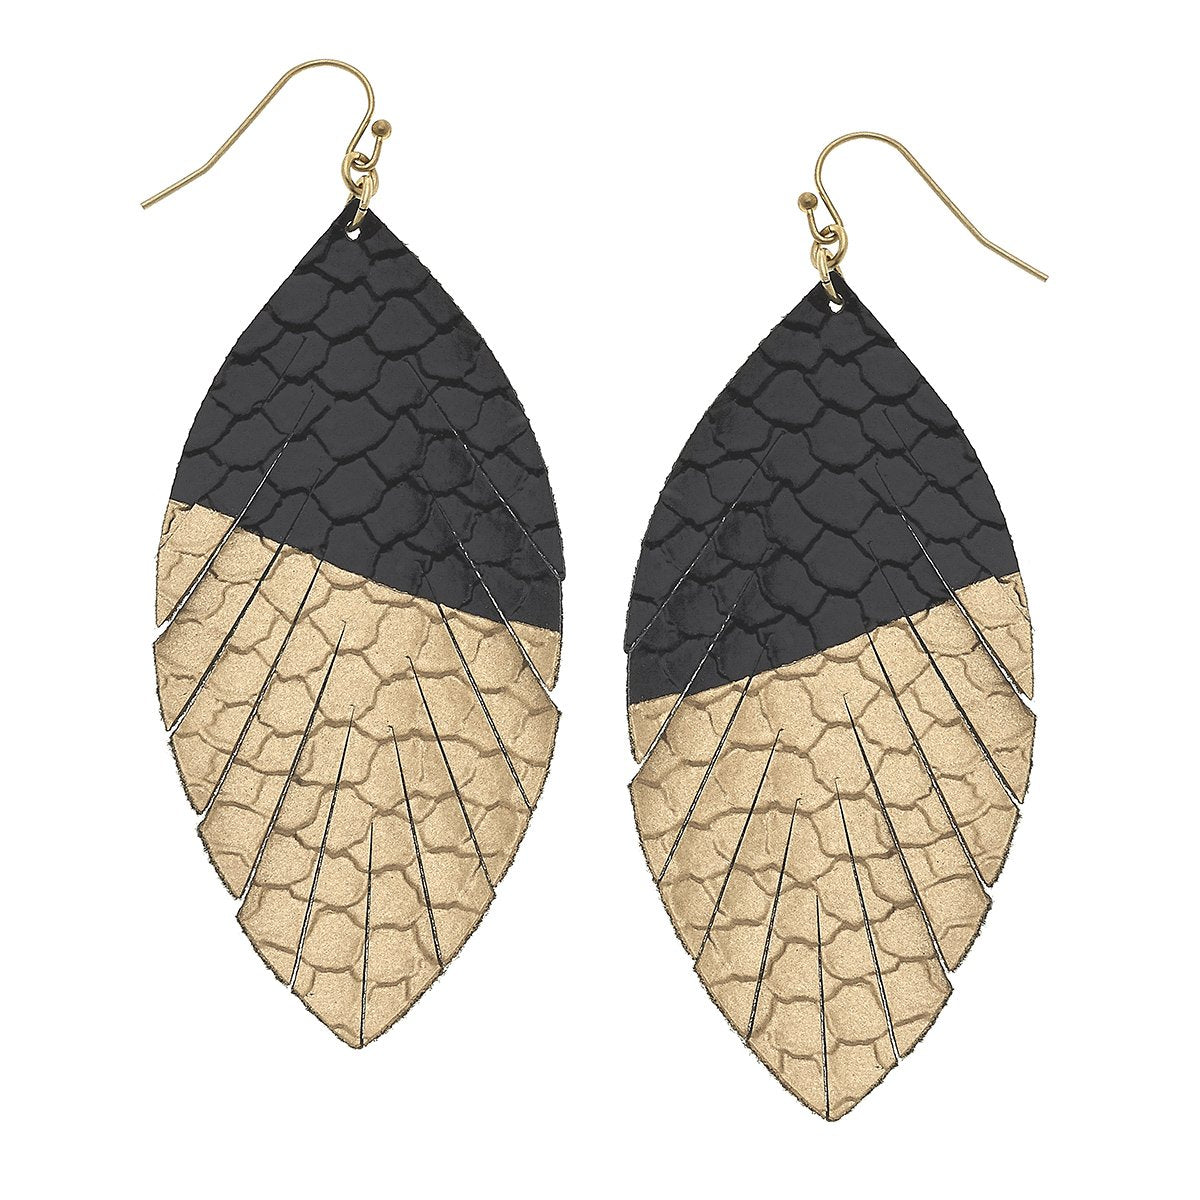 Gold-Tipped Leather Earrings in Black